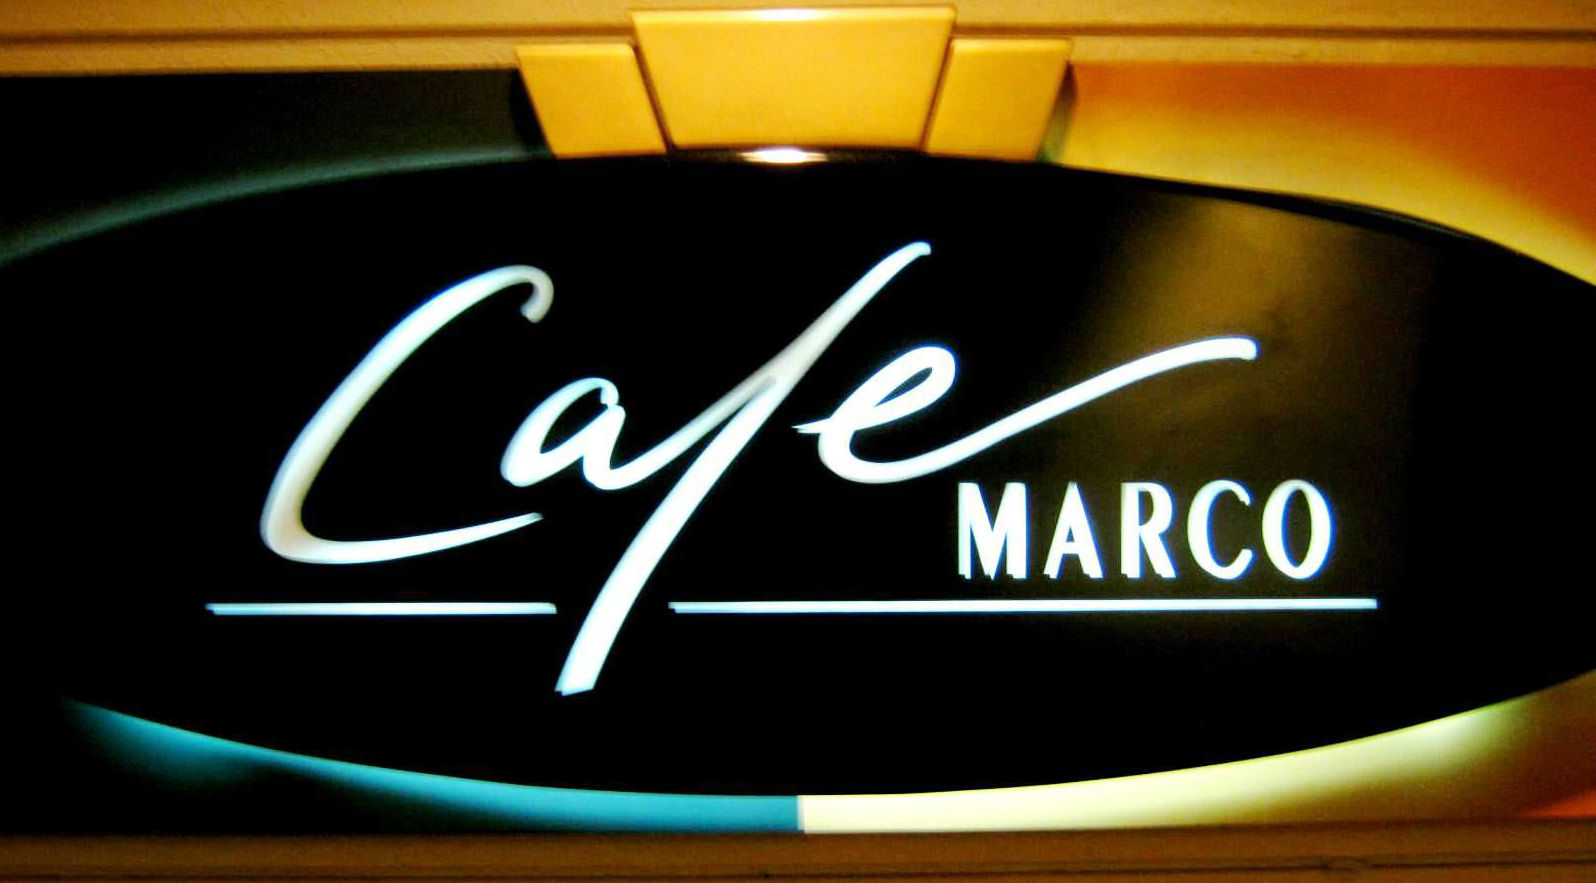 CAFE MARCO